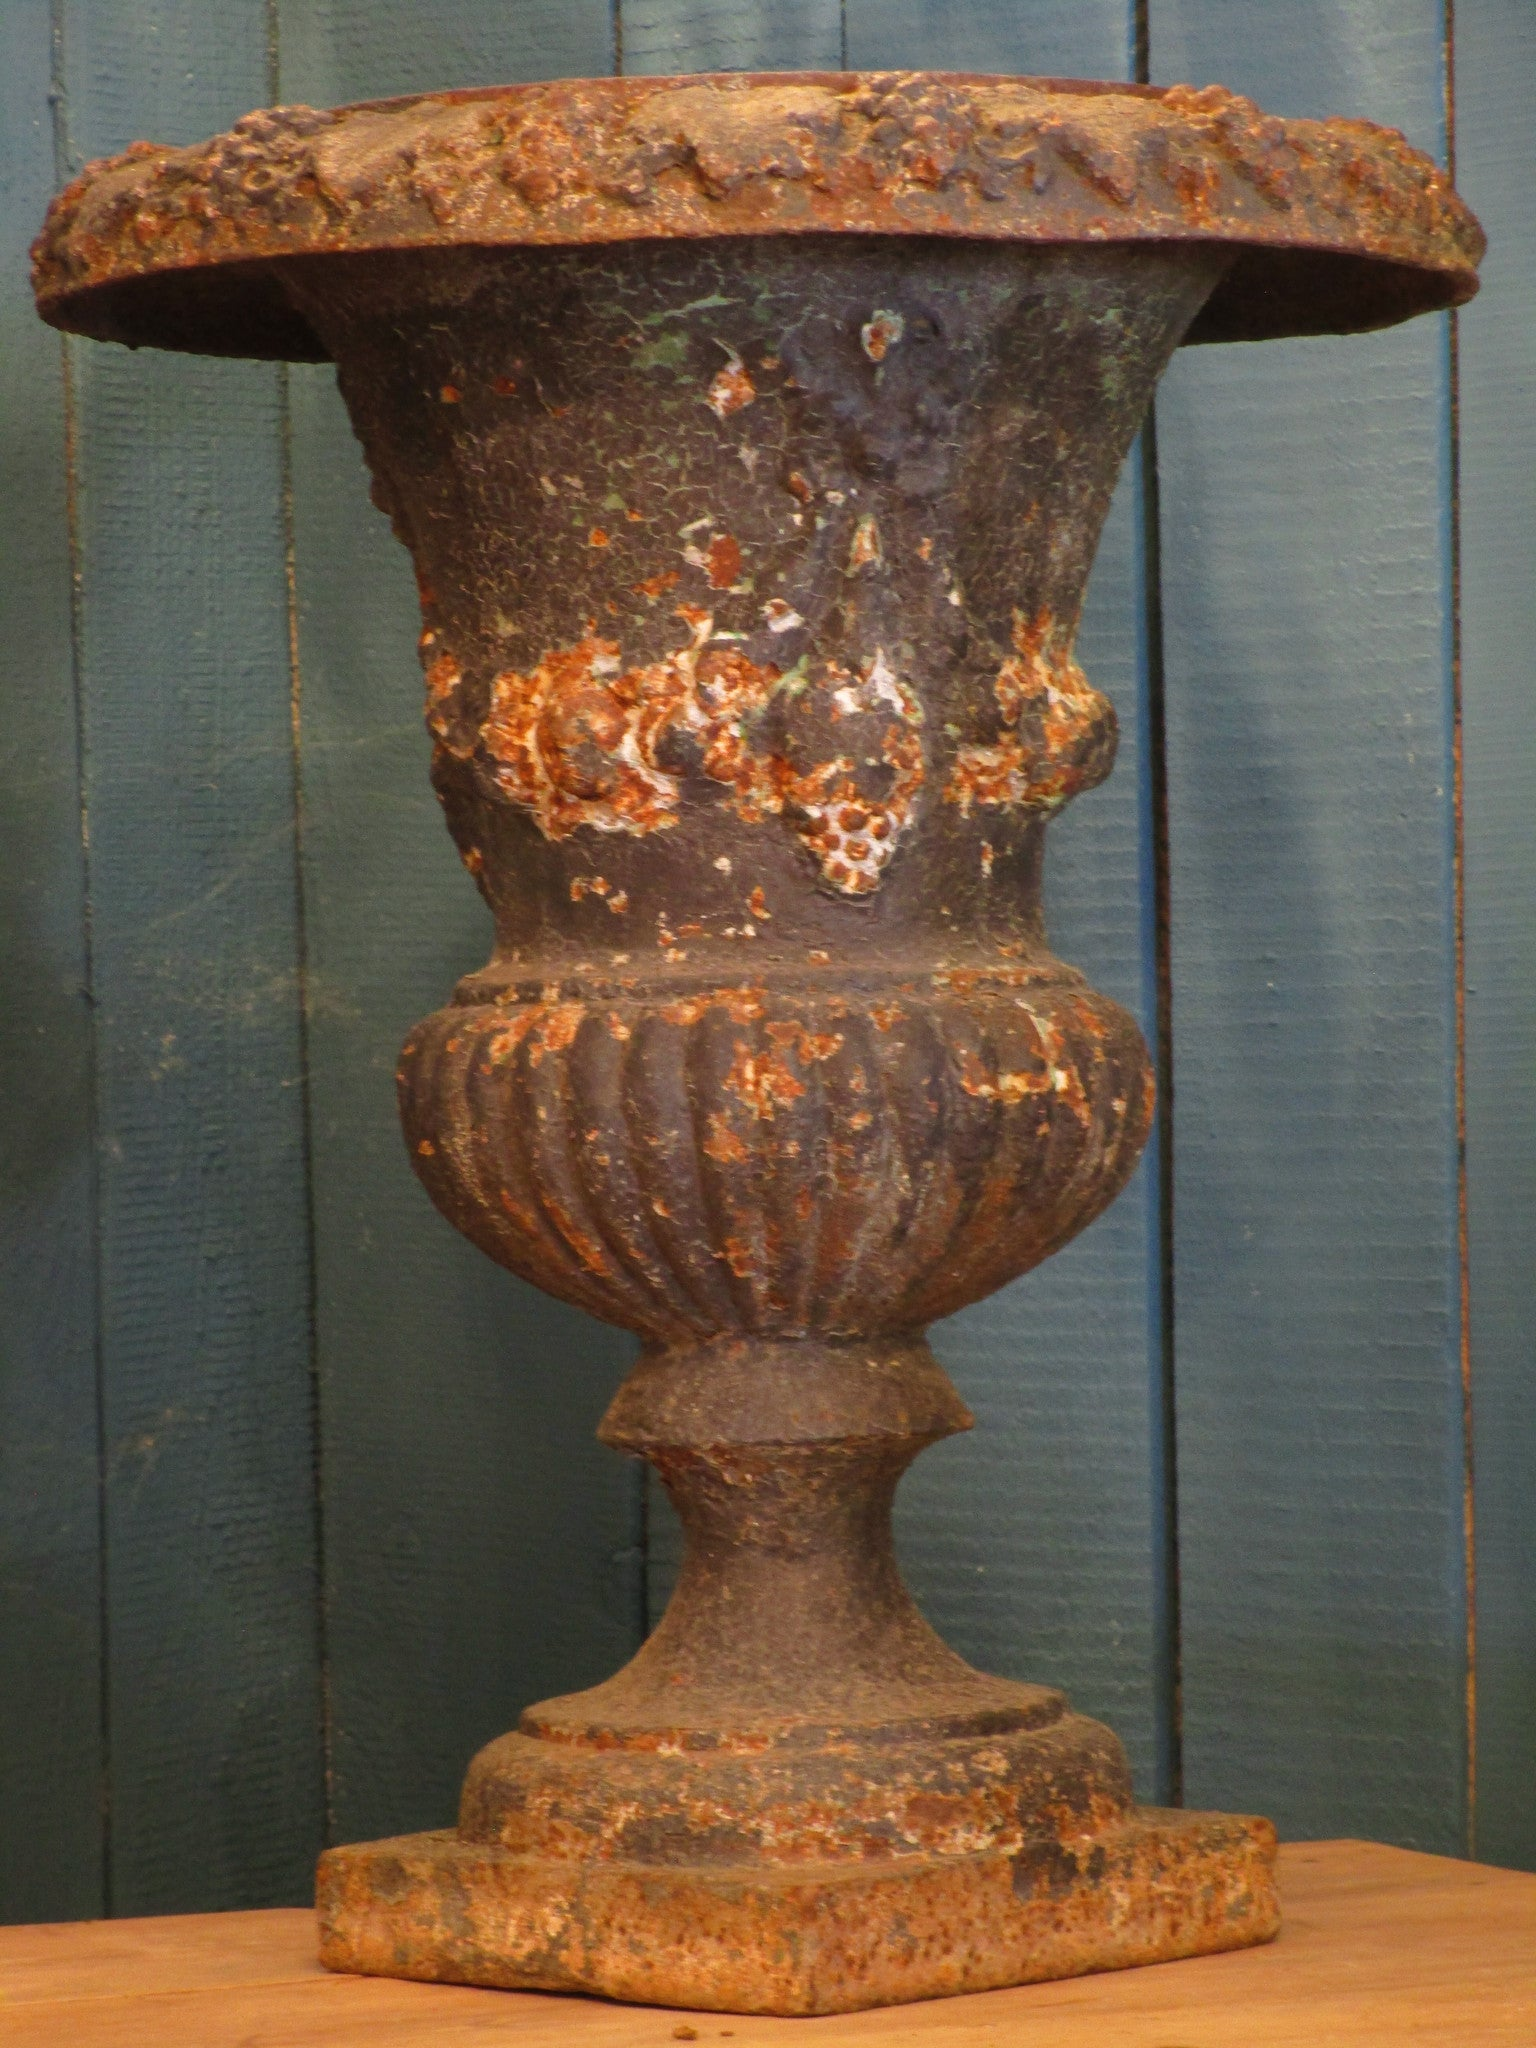 Large French Medici urn